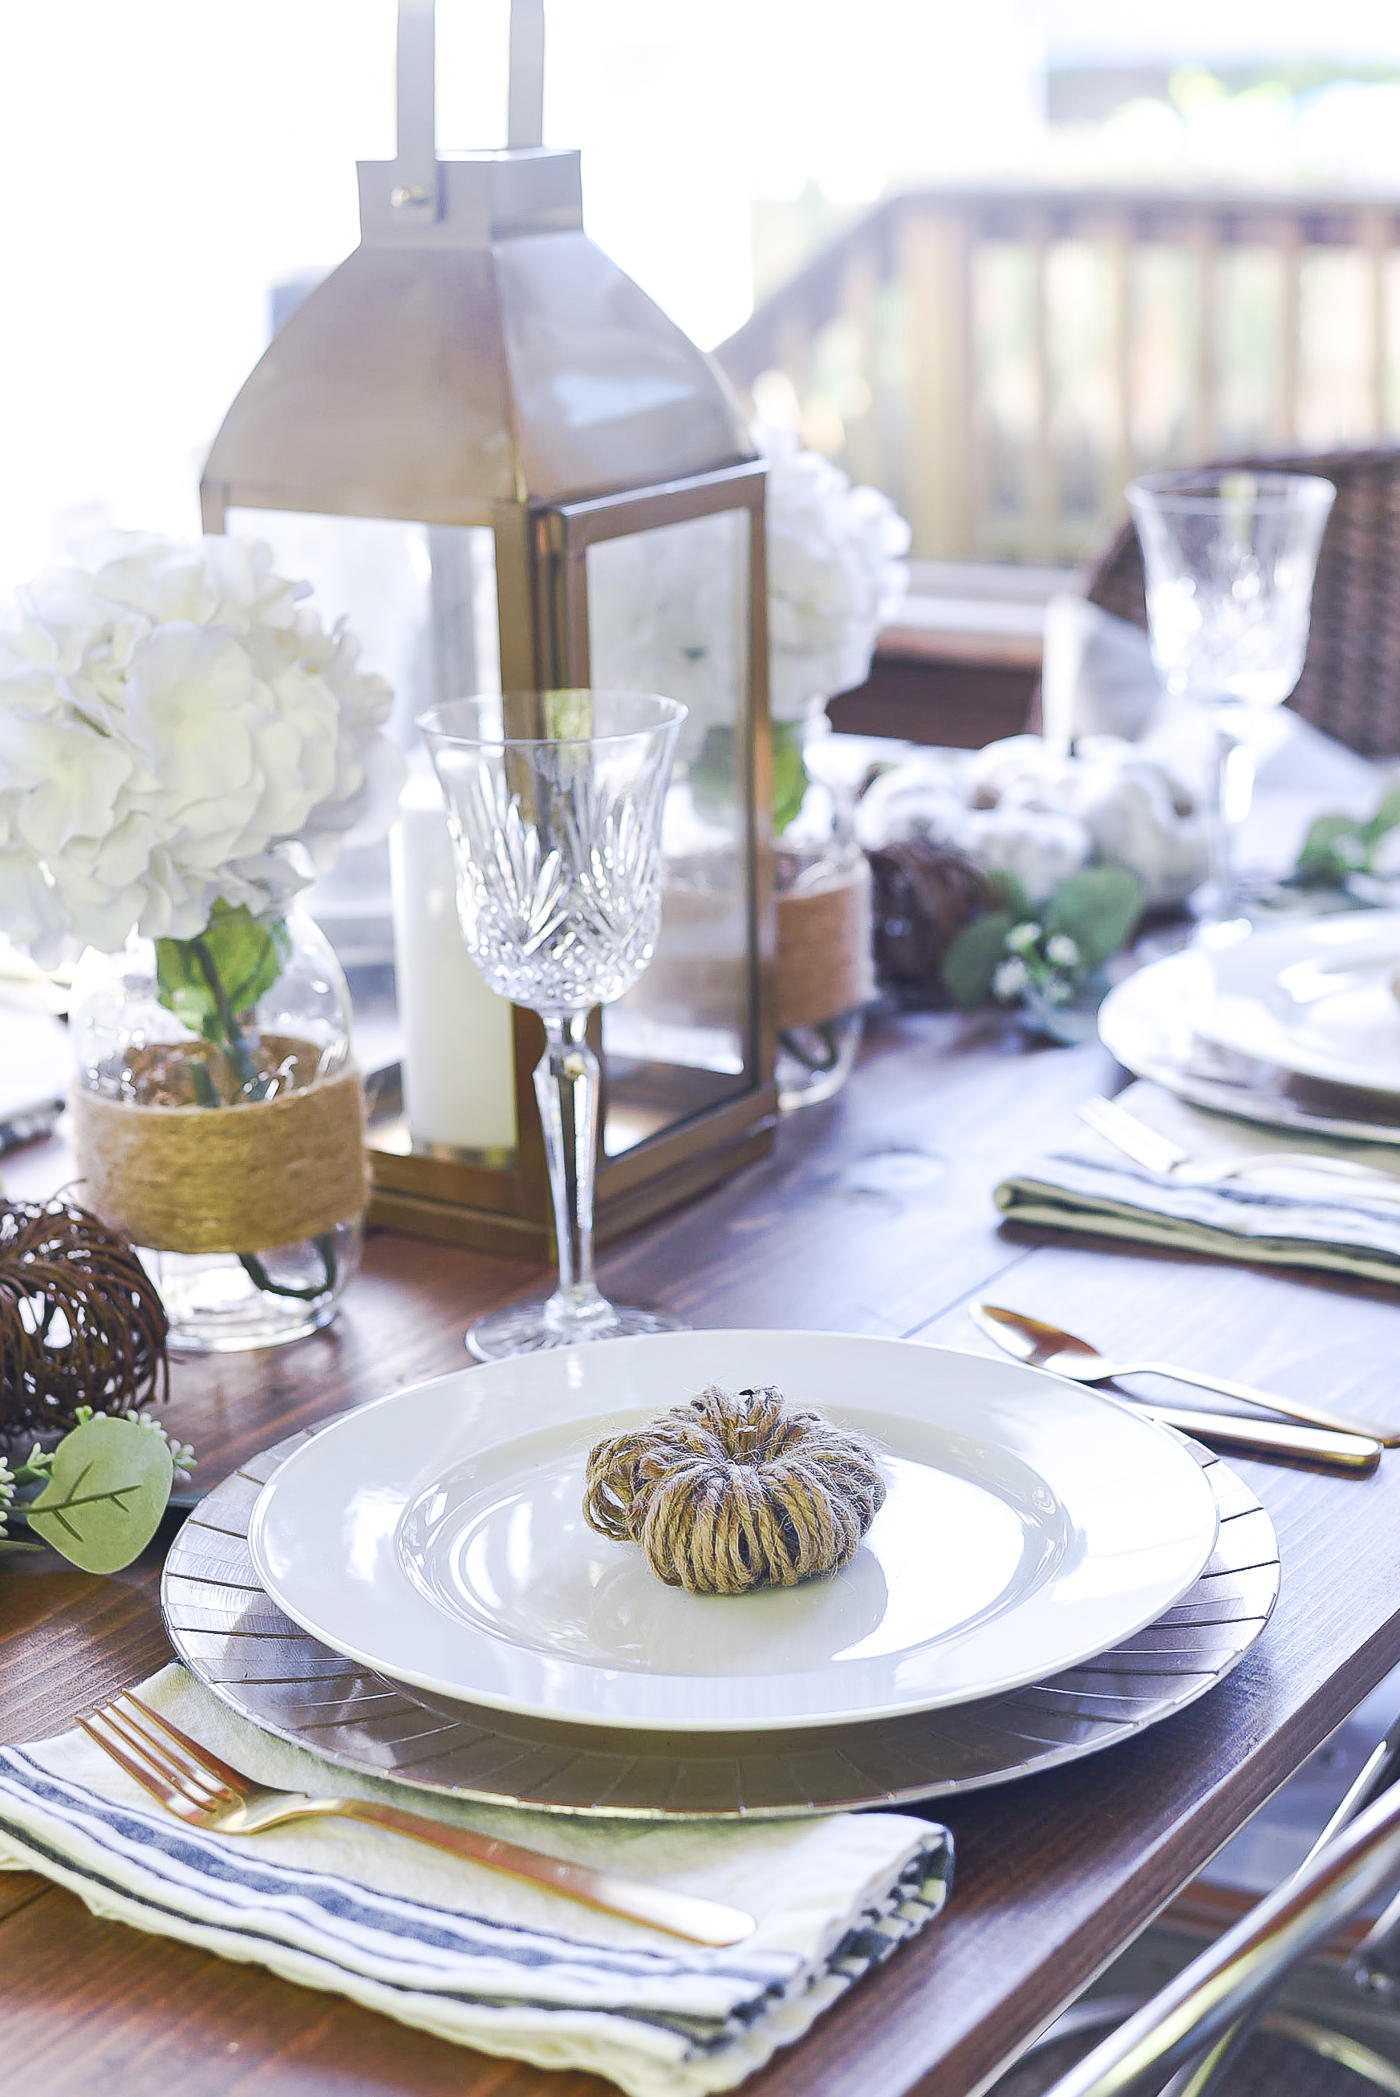 Fall Table Setting in Gray, White, Jute, Neutral - Thanksgiving Table Setting